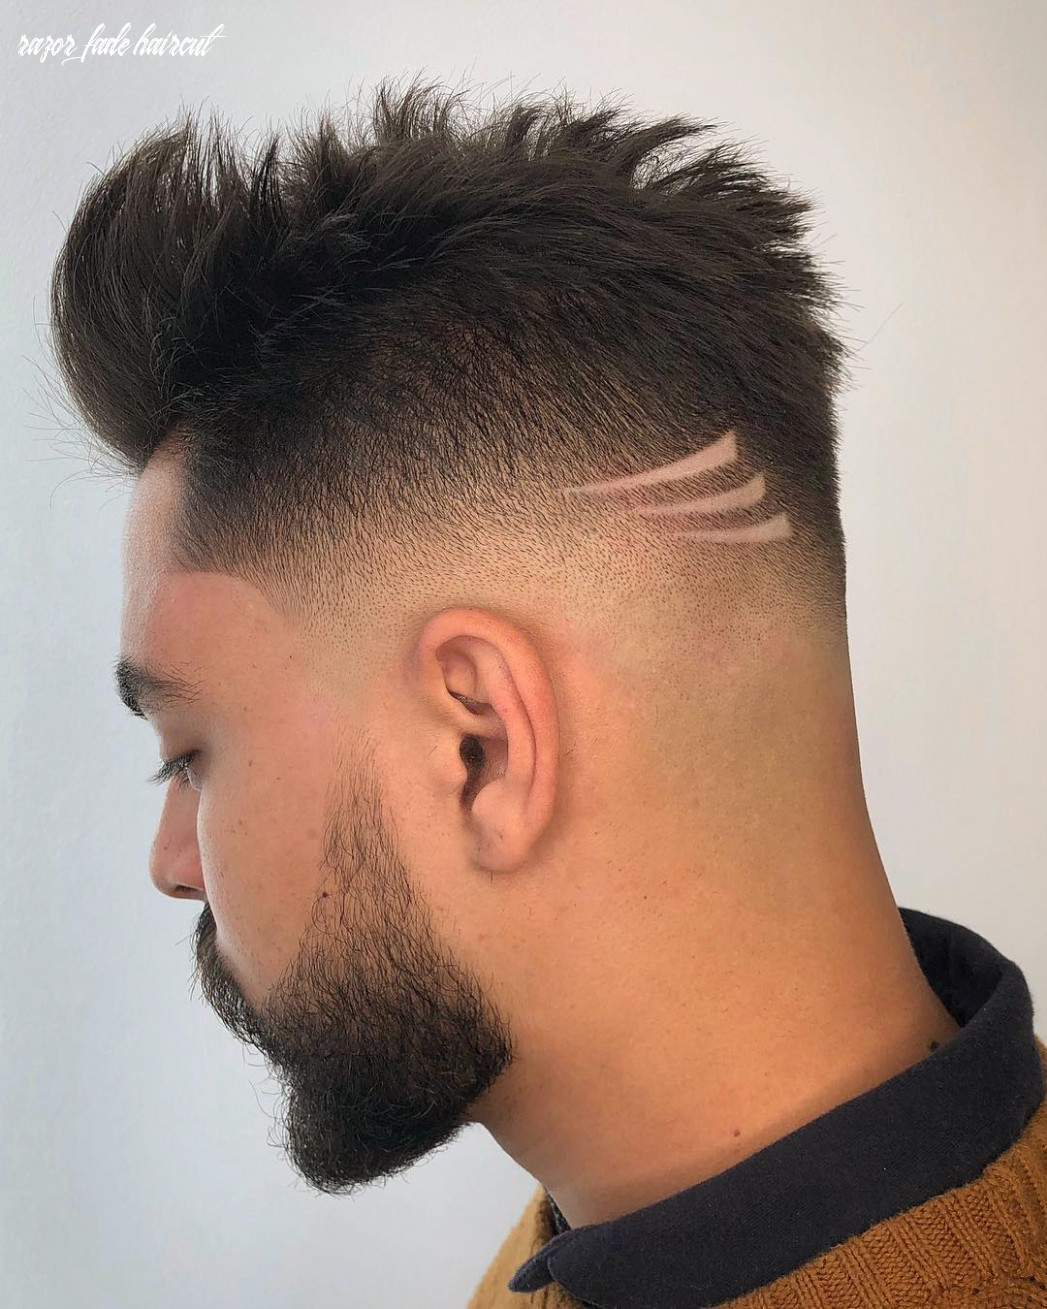 Top 8 Fade Haircuts For Men (8 Styles)